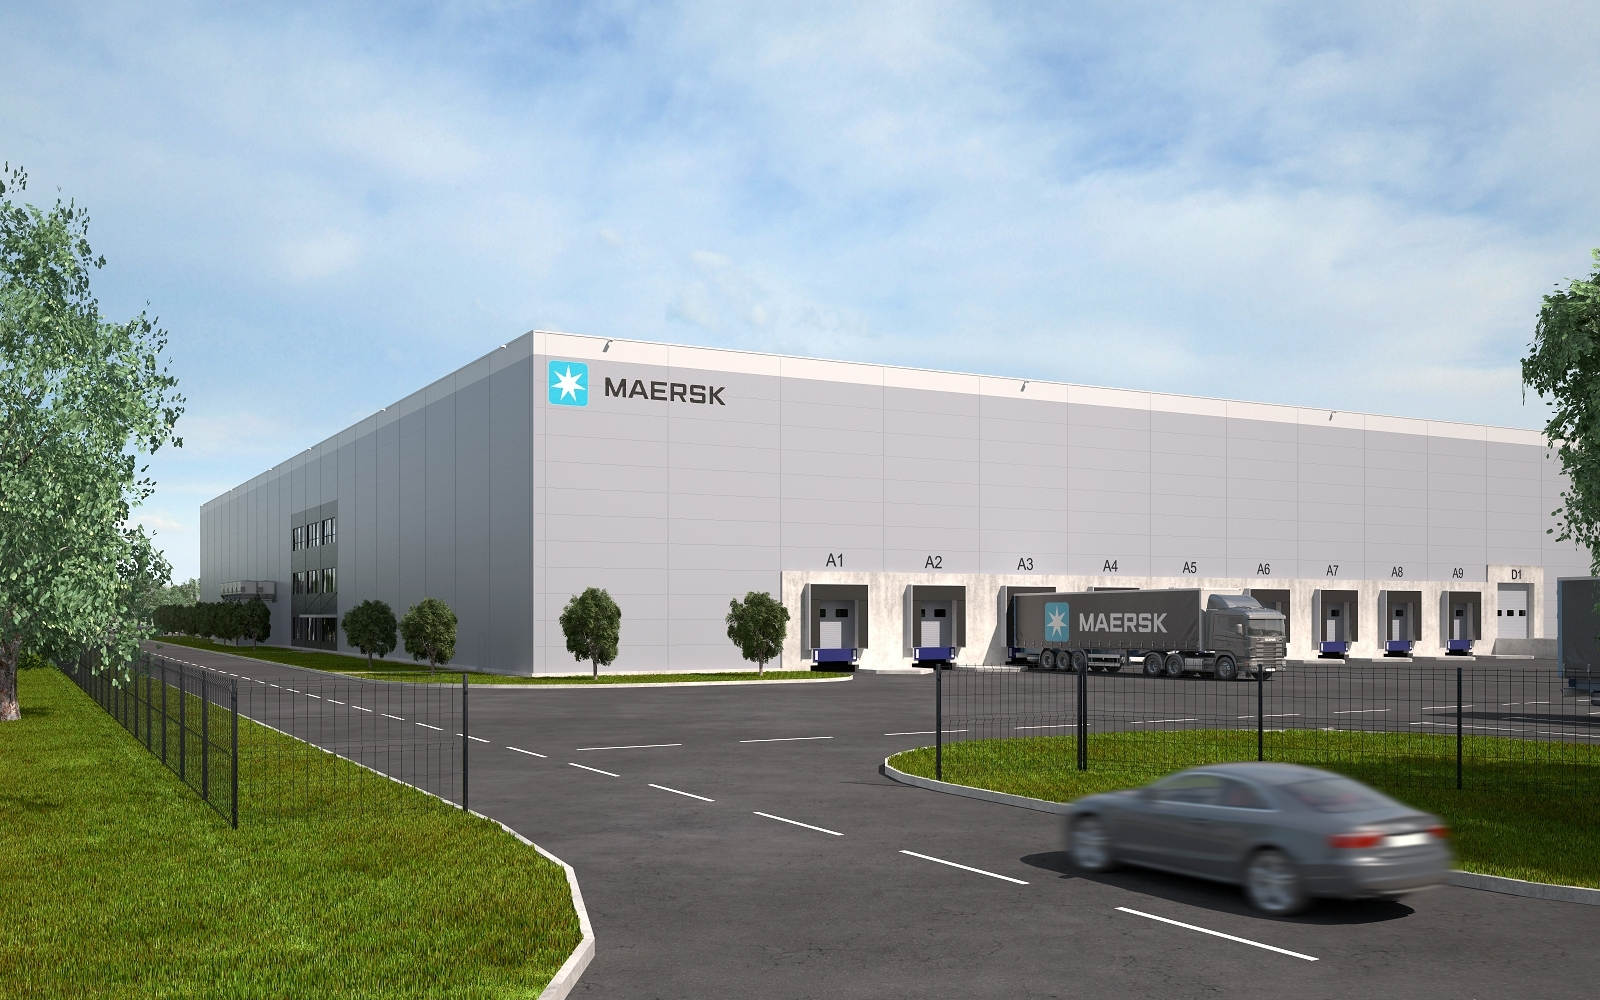 Maersk's first cold storage in St. Petersburg